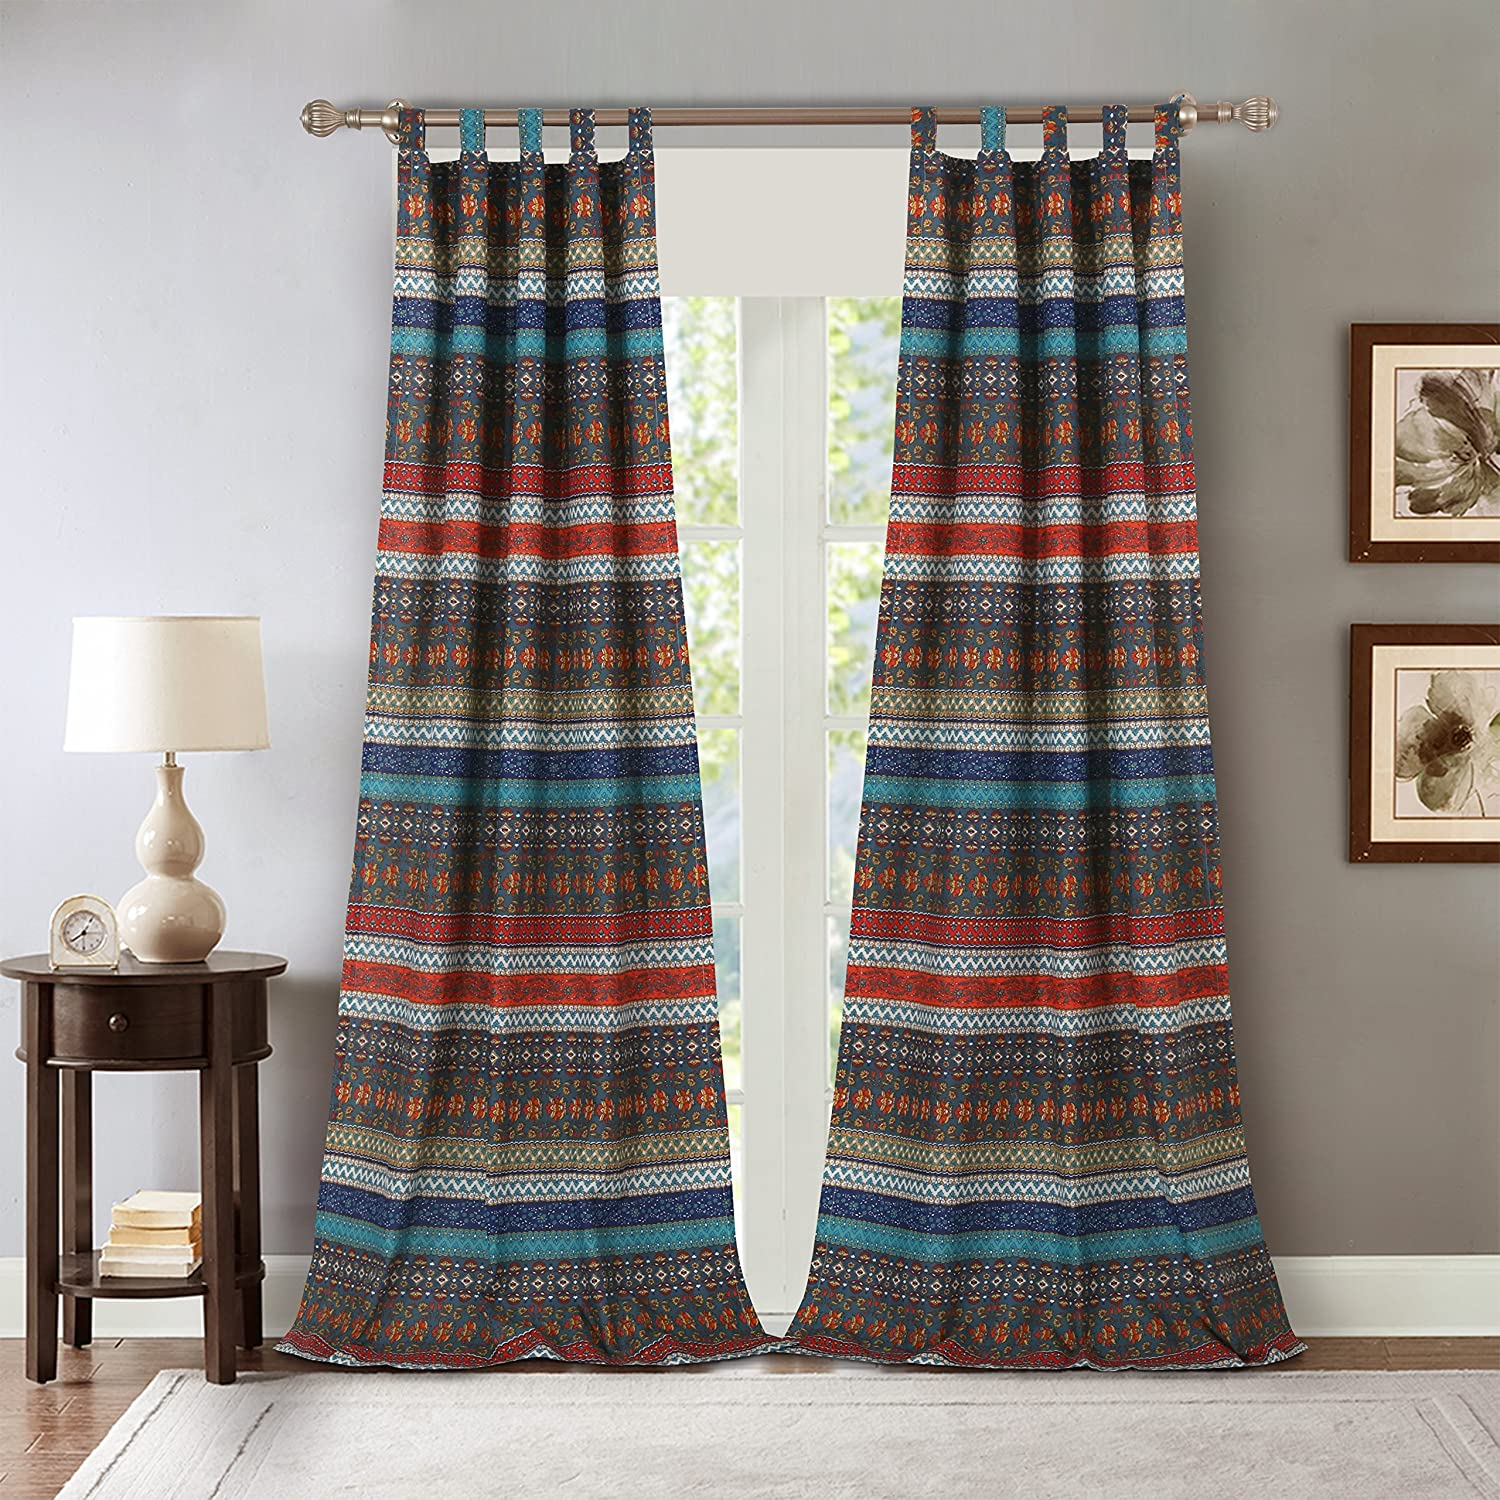 Barefoot Bungalow Brooklyn Curtain Panel Pair Greenland Home Fashions GL-1706BWP